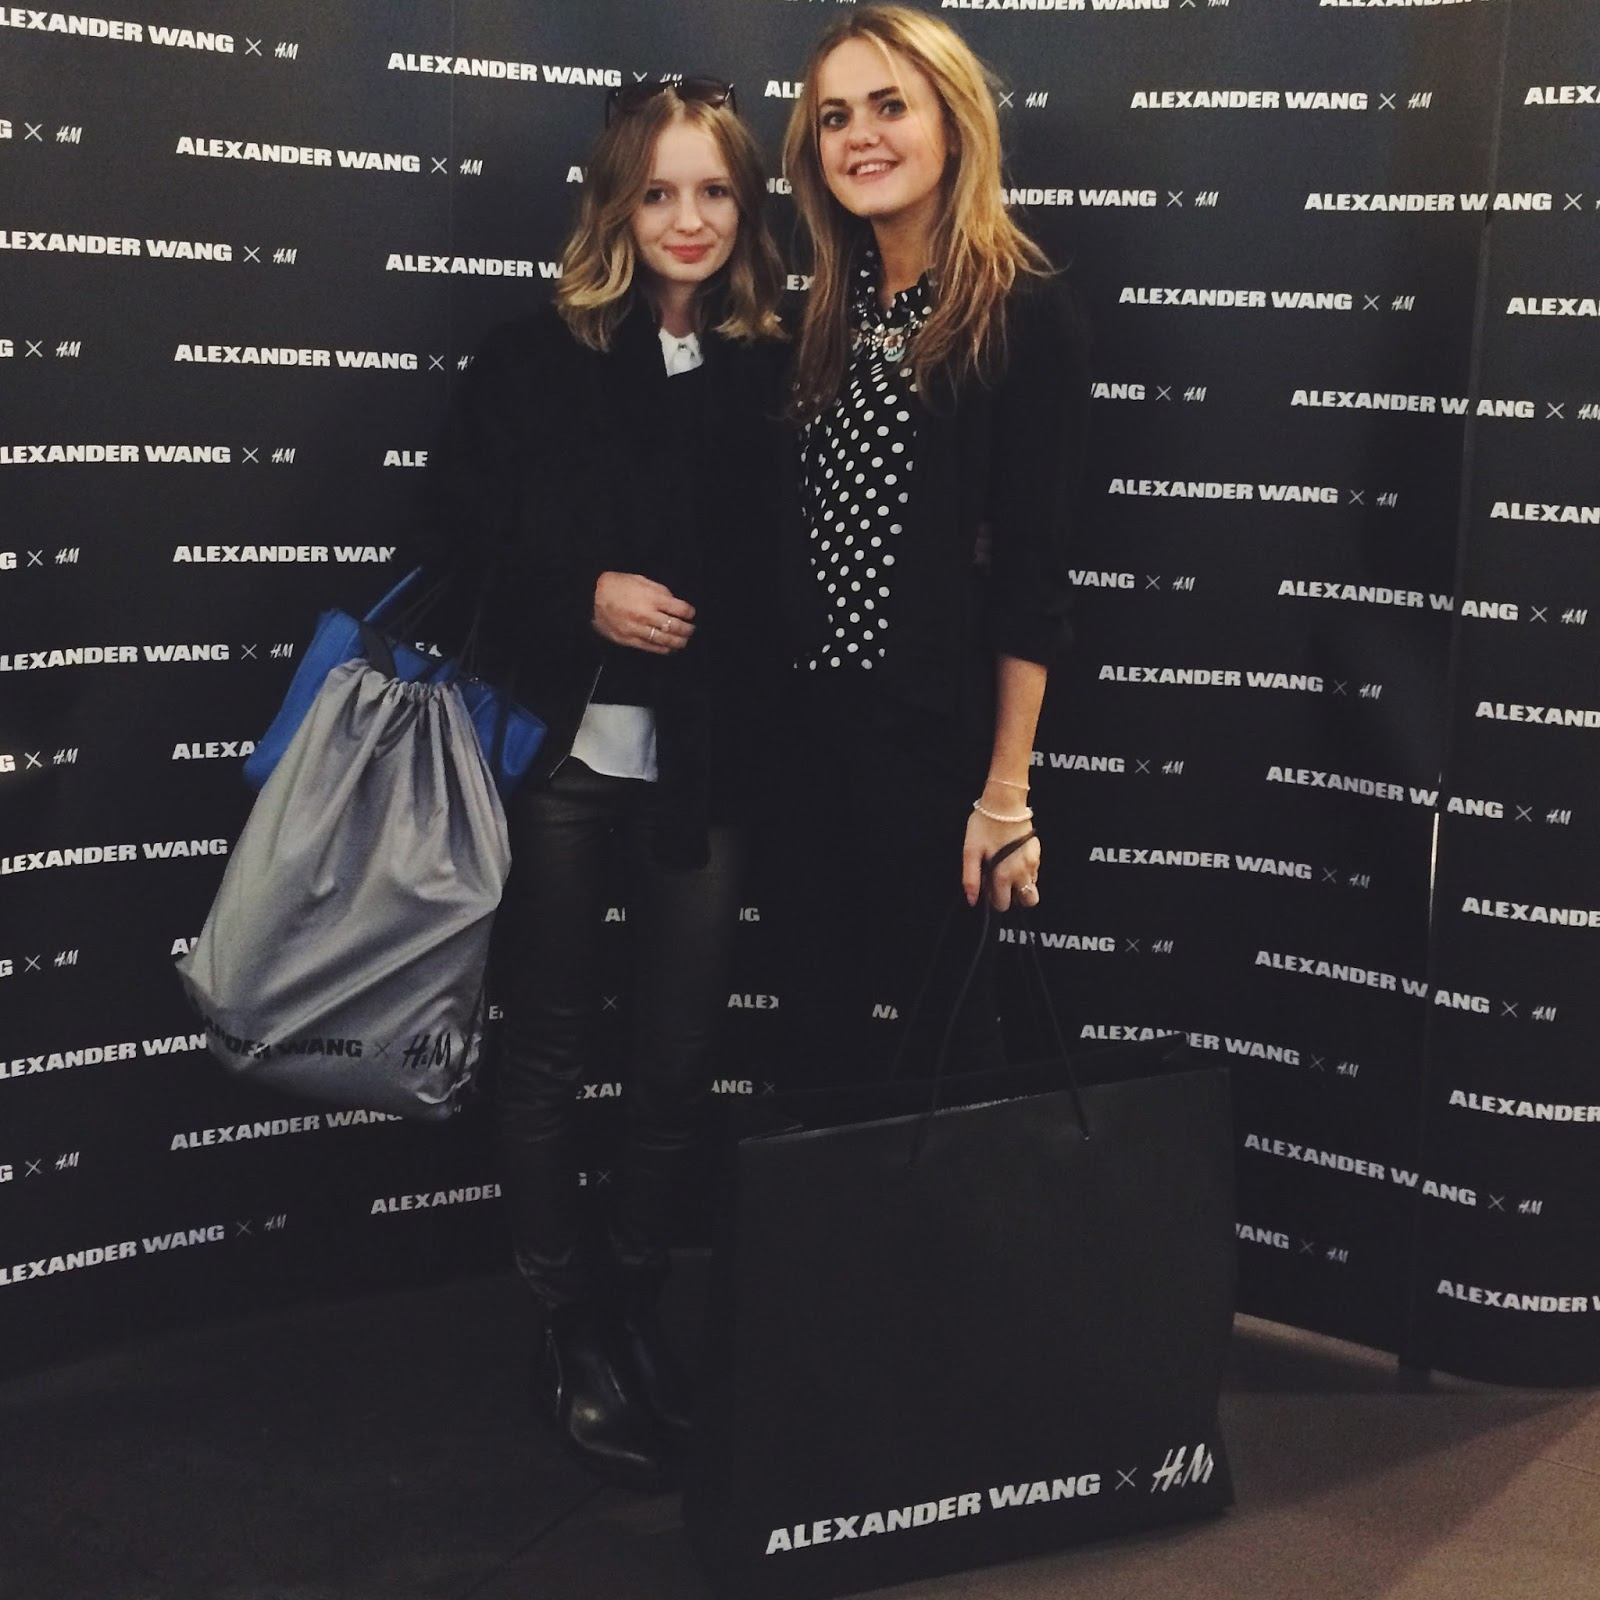 Girls at Alexander Wang x H&M Exclusive Shopping Event